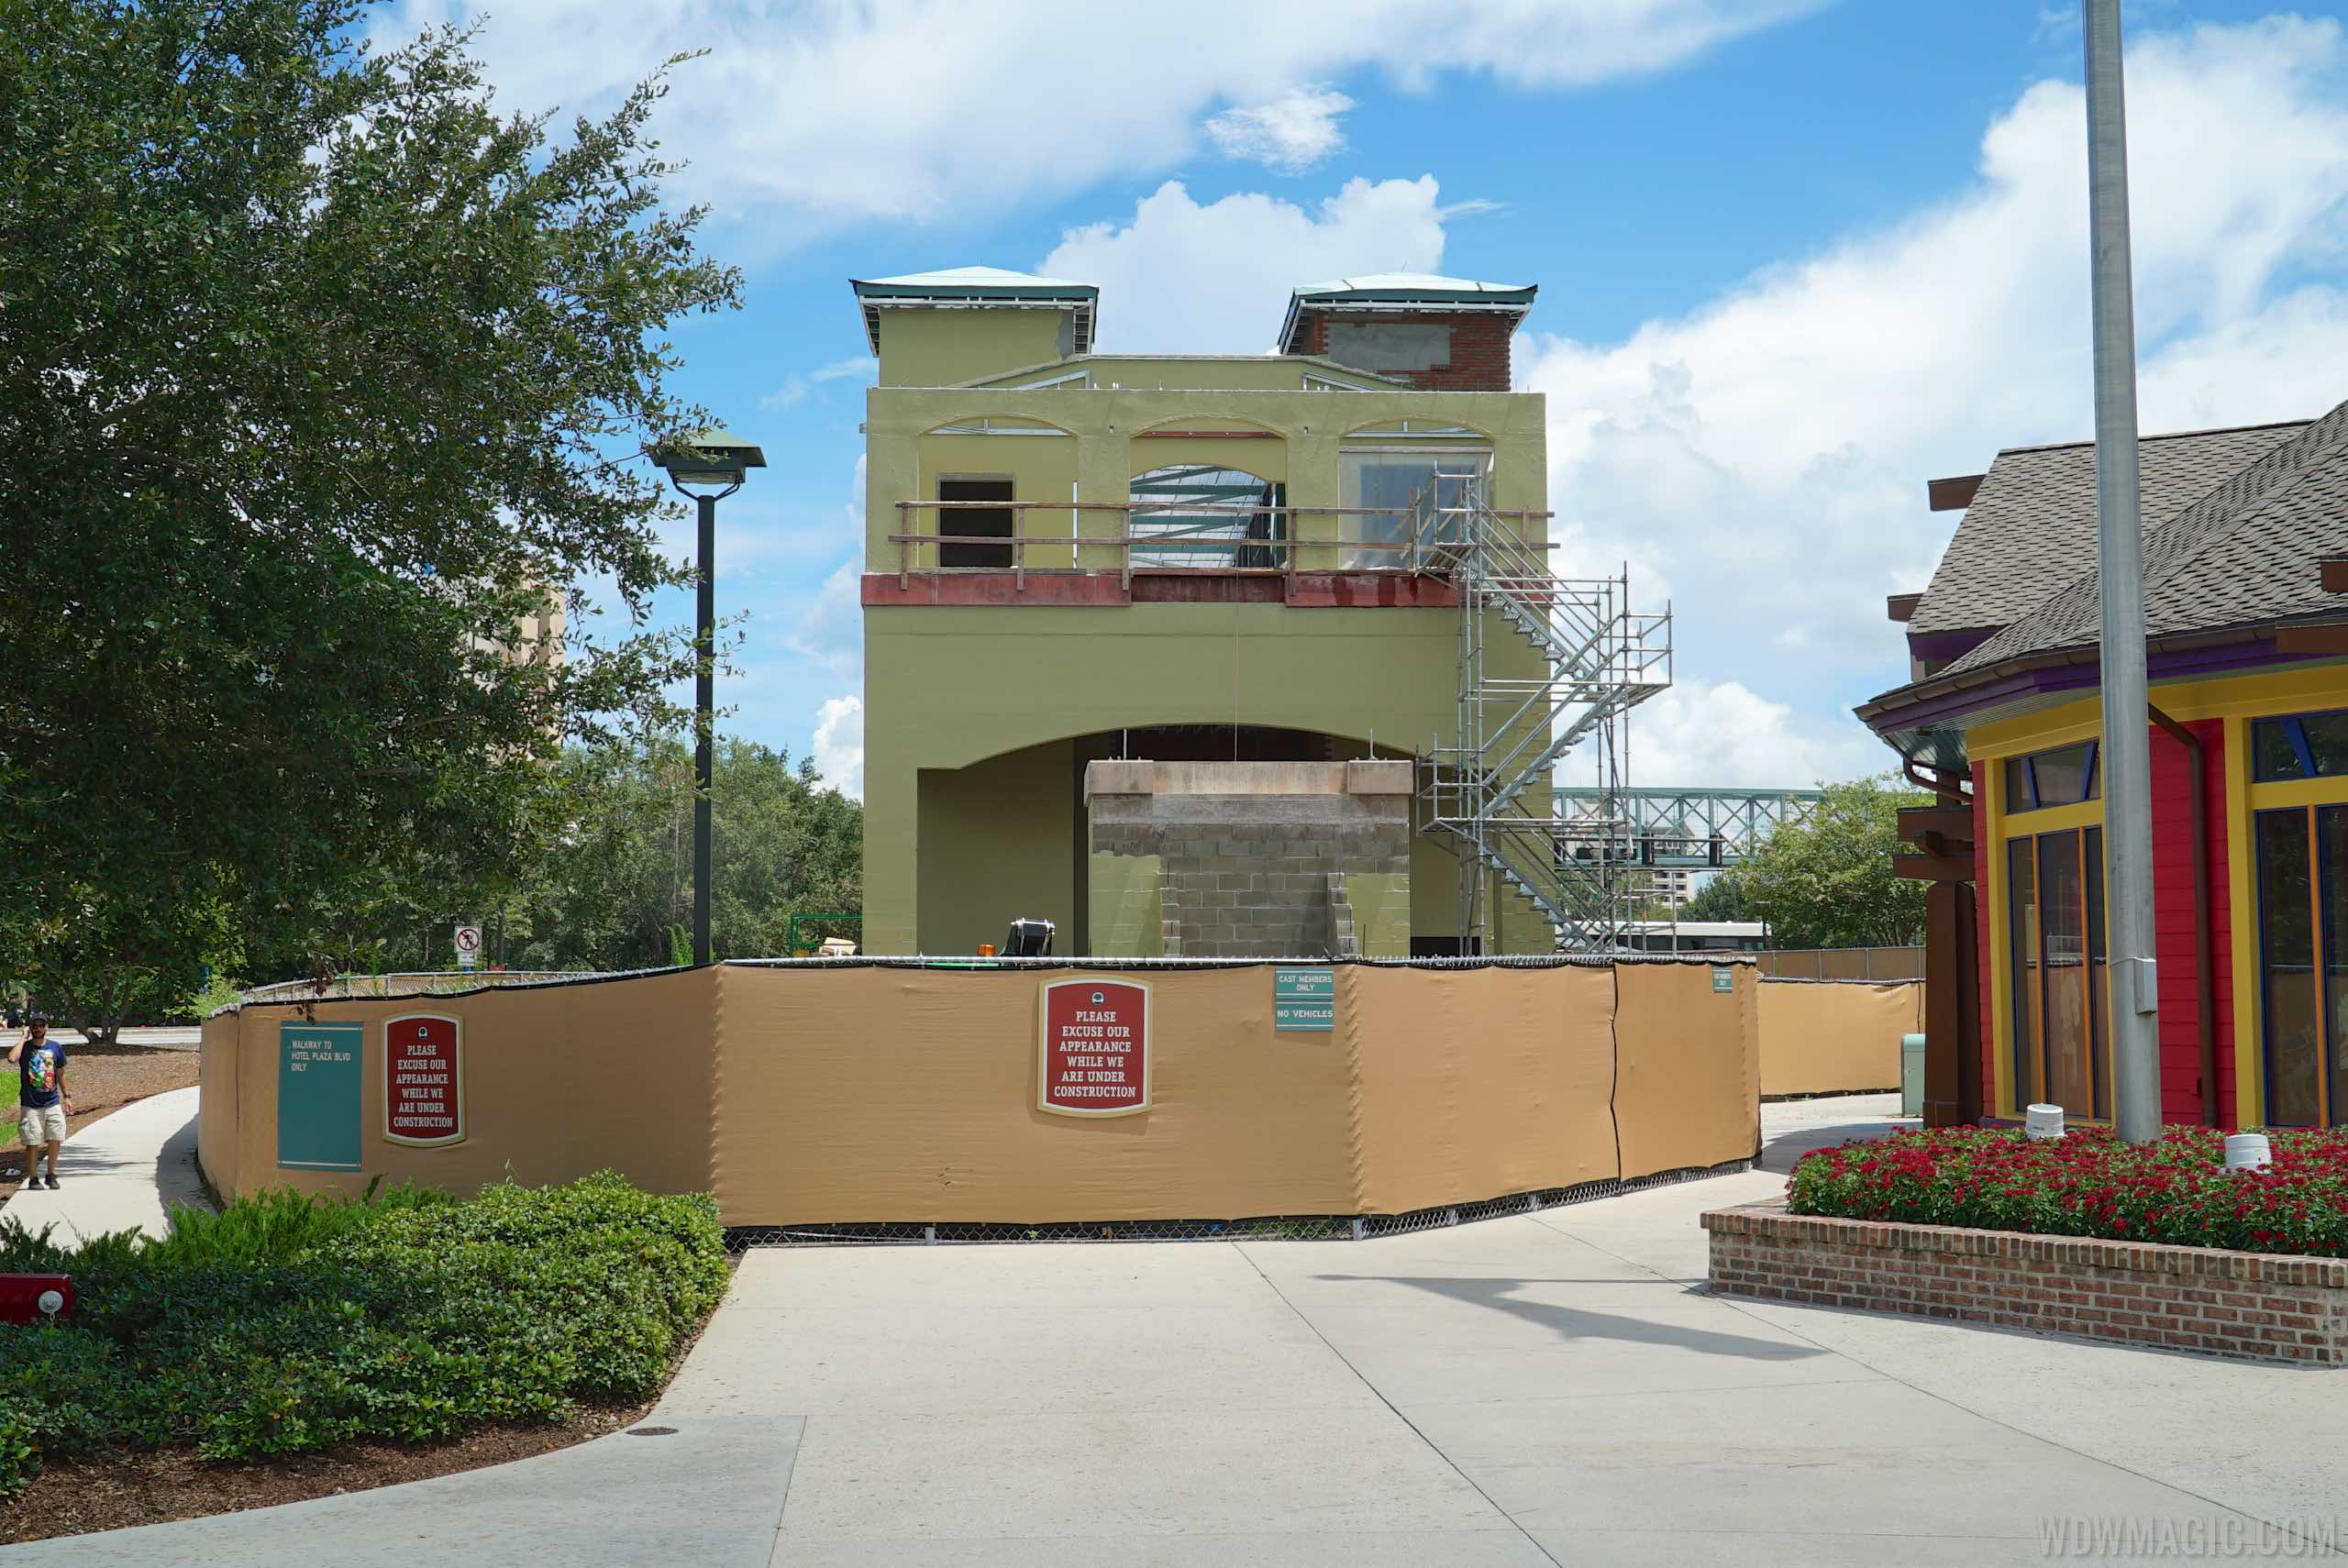 Hotel Blvd pedestrian bridge entrance at the Marketplace